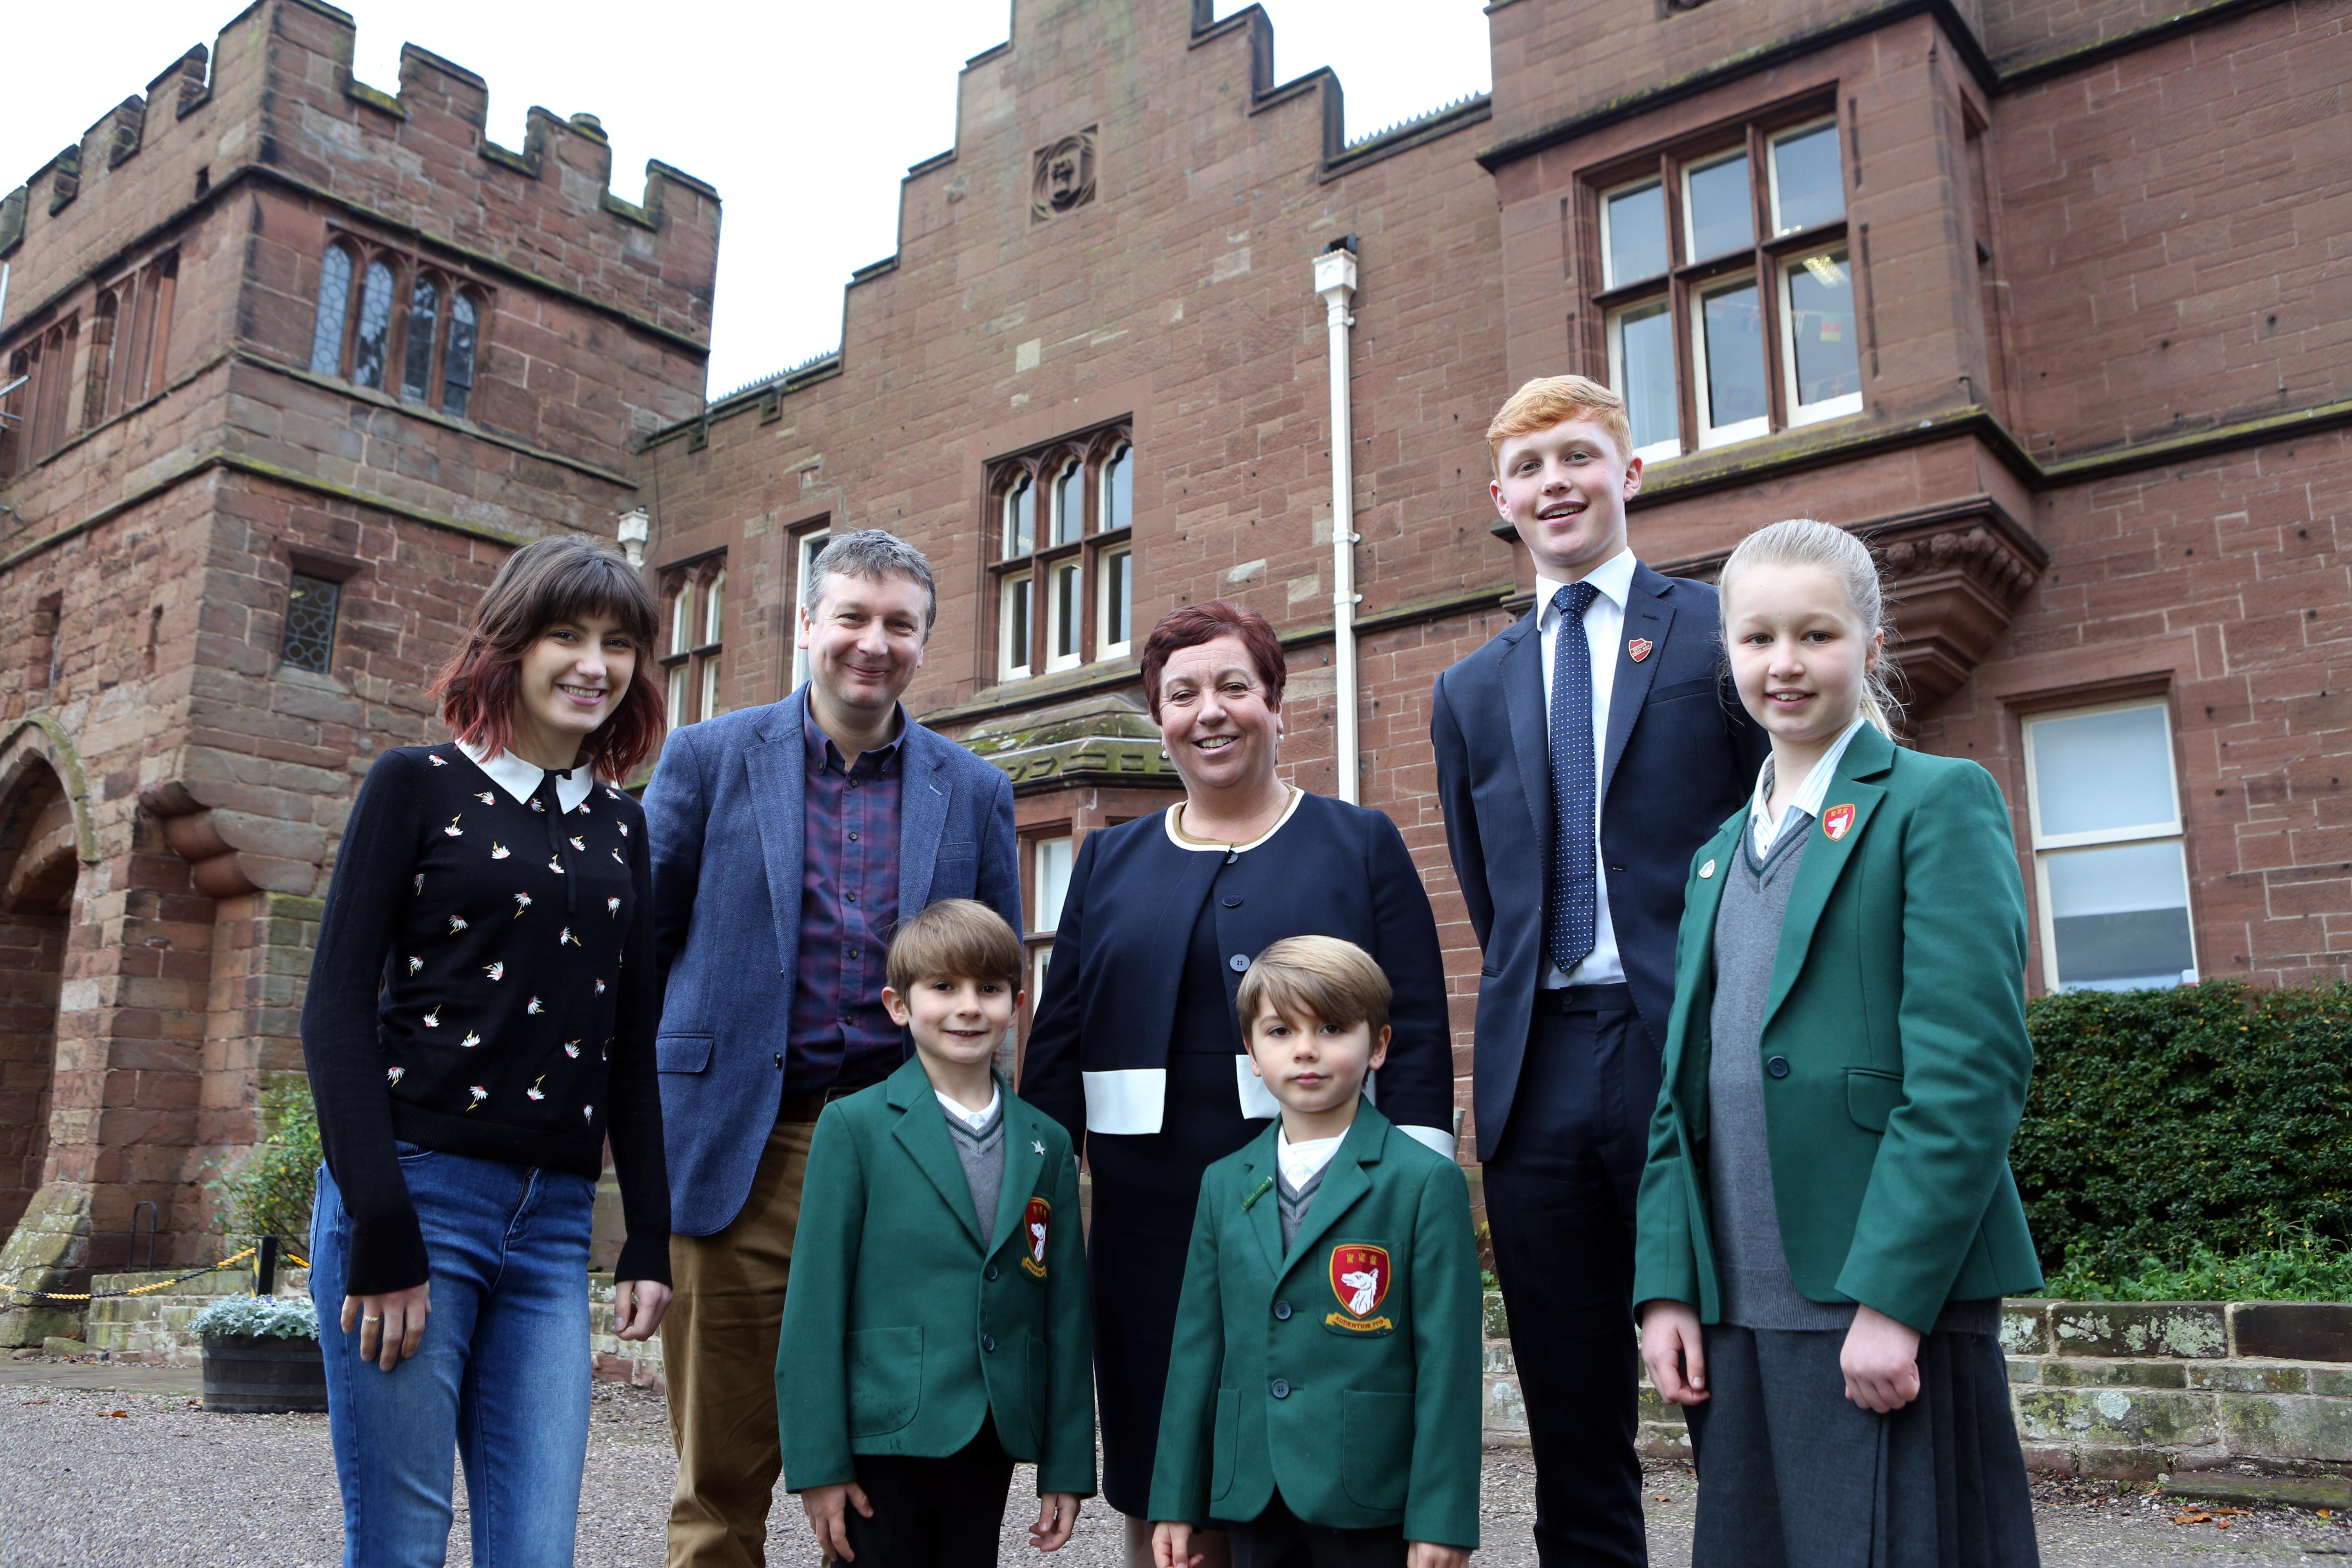 Knew Productions Get Grade 'A' For Video For Prestigious Chester School